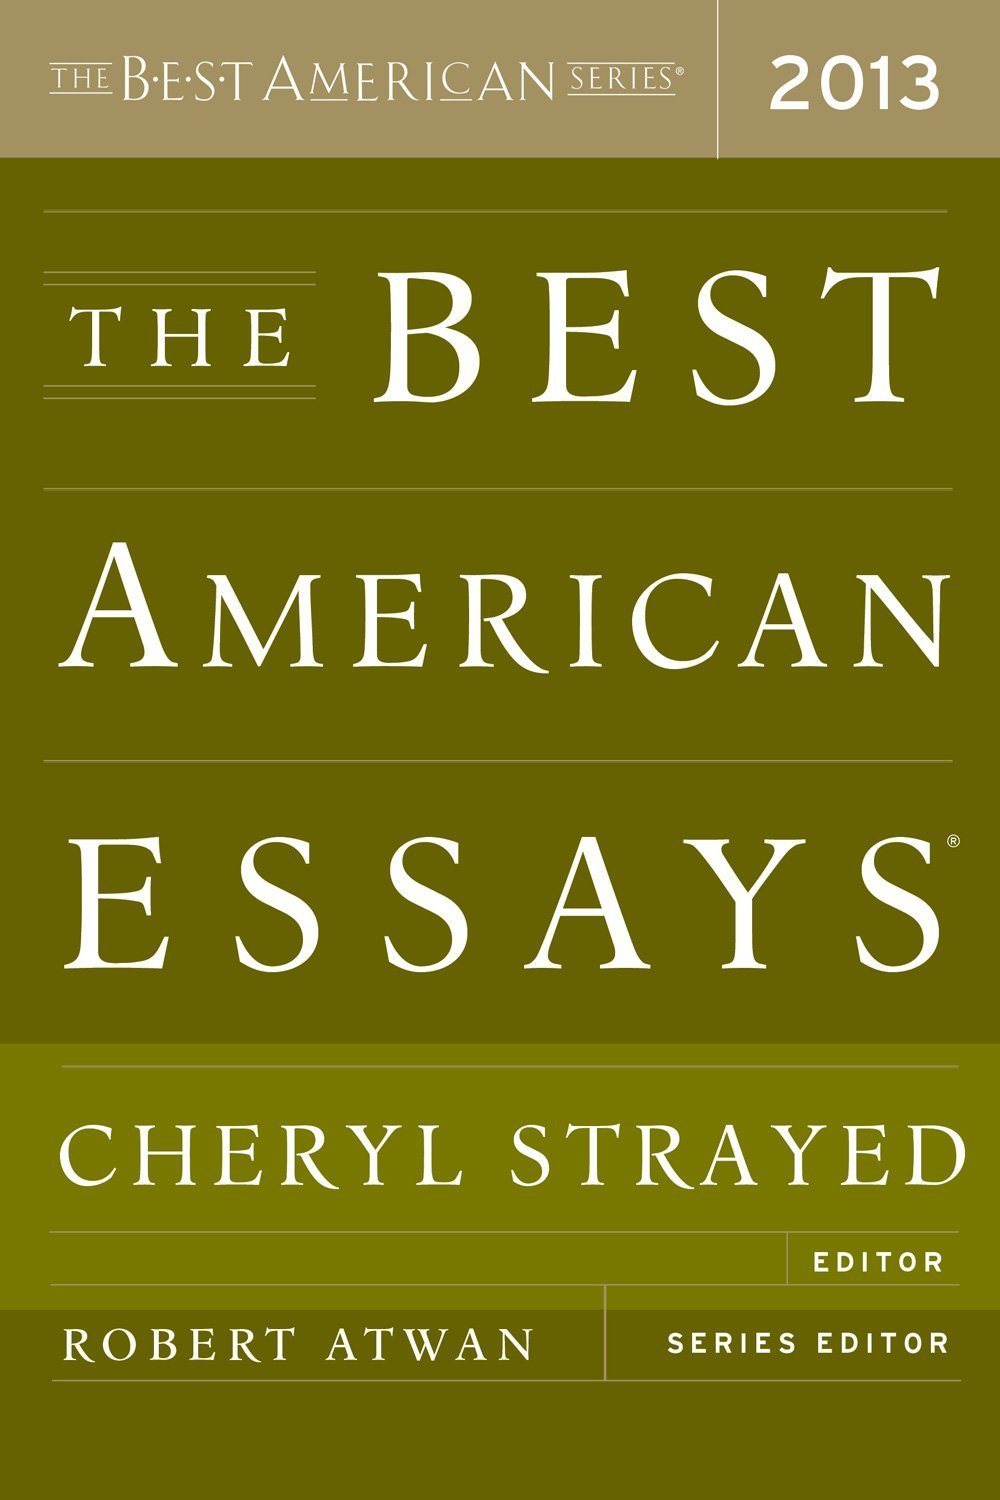 003 Best American Essays Essay Example Striking 2017 Table Of Contents The Century Pdf Full